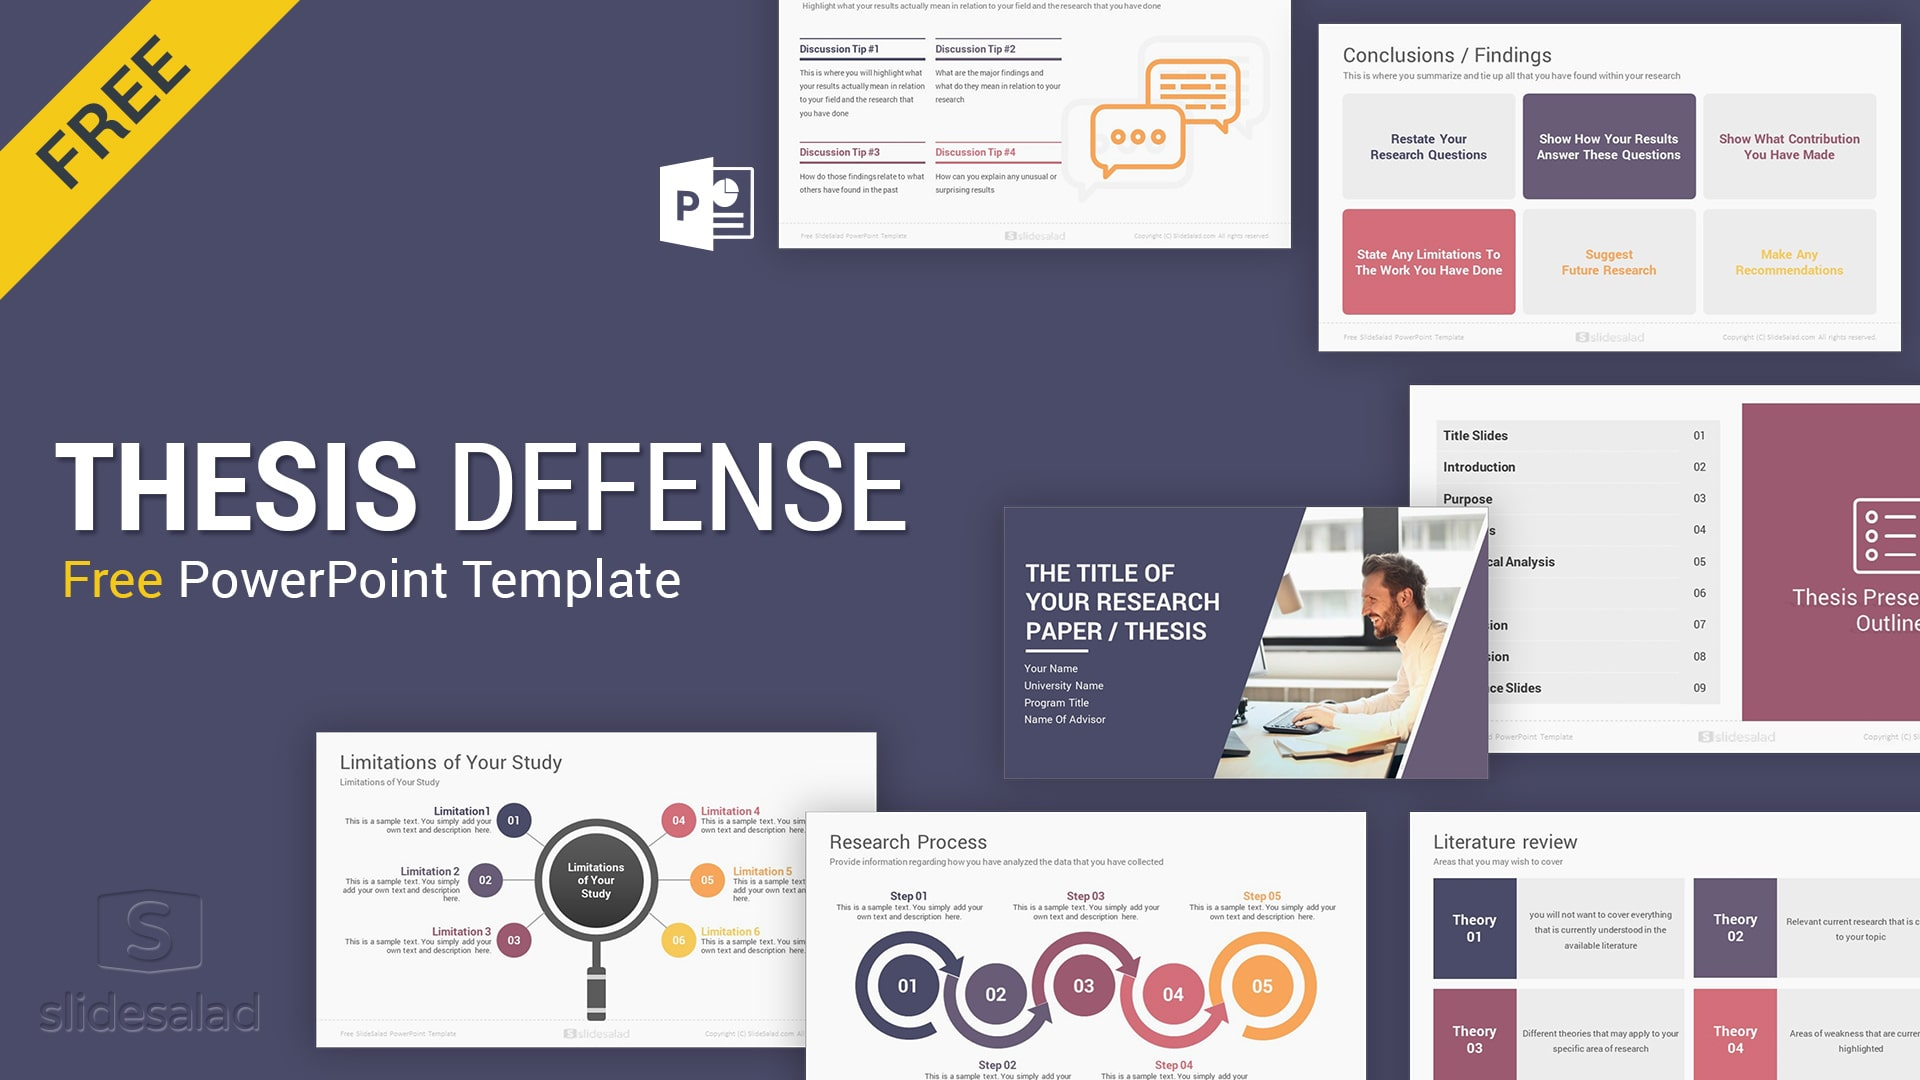 Powerpoint Template Ideas from www.slidesalad.com